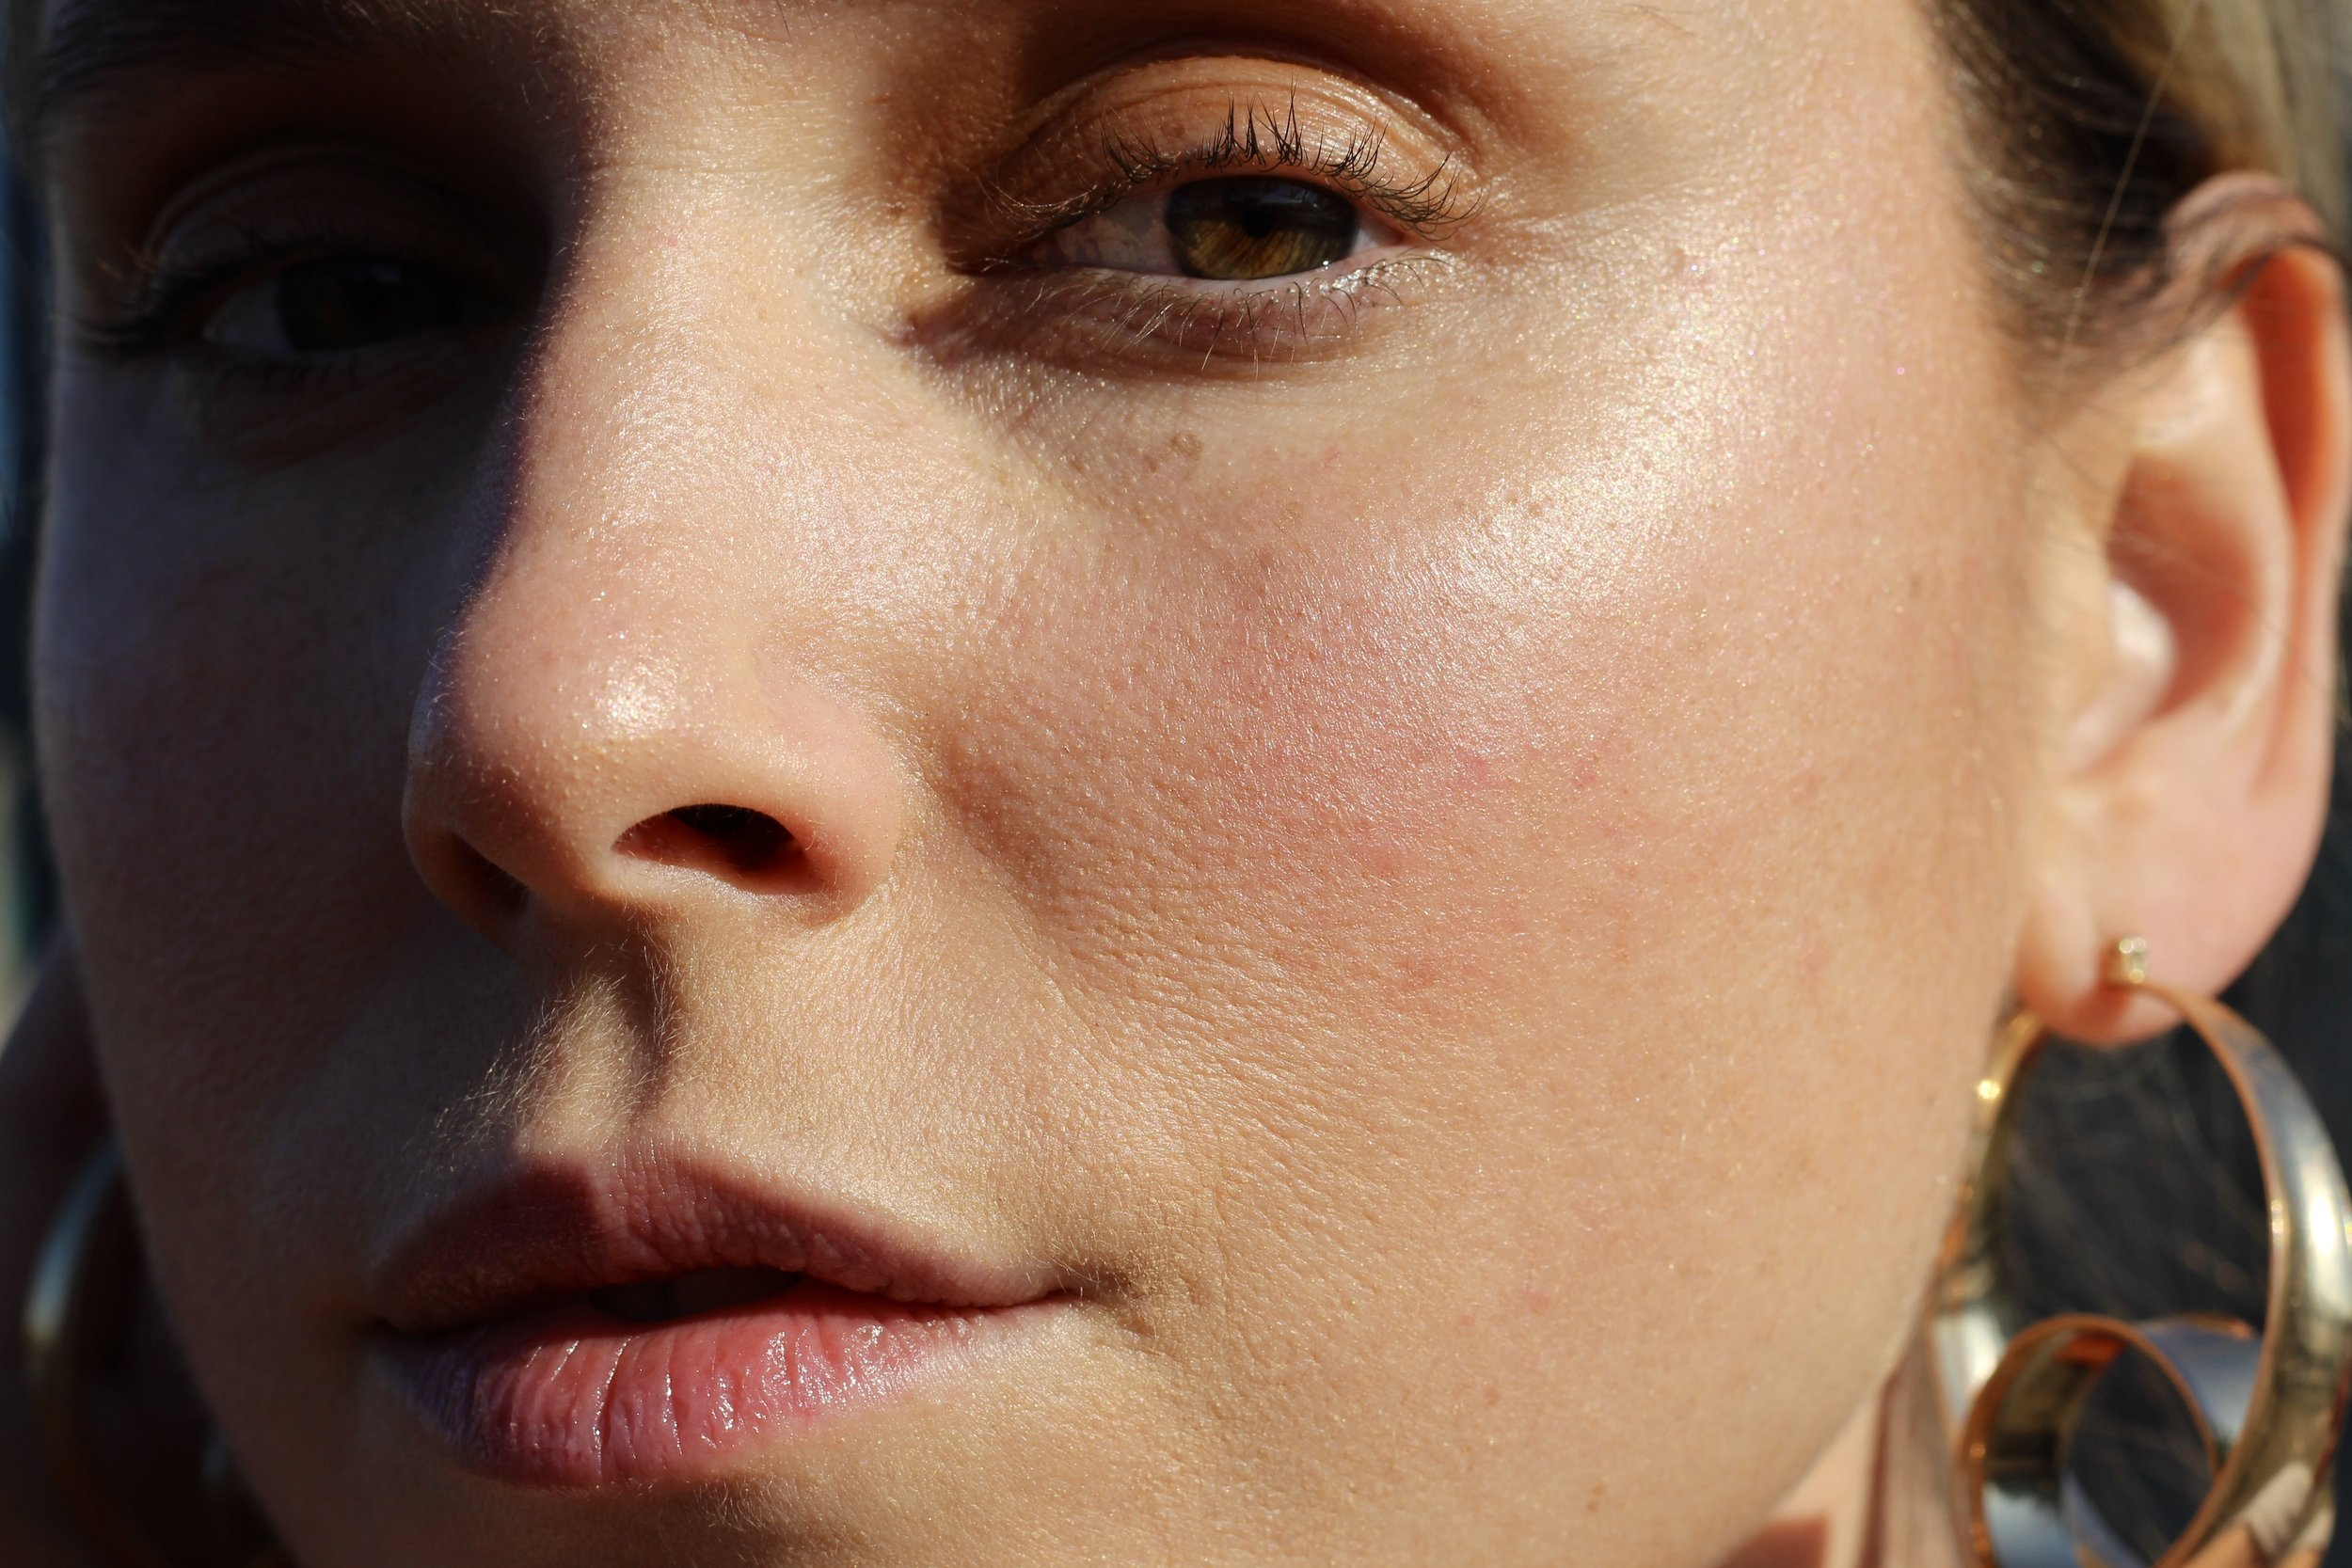 RADIANT MAKEUP HOW TO